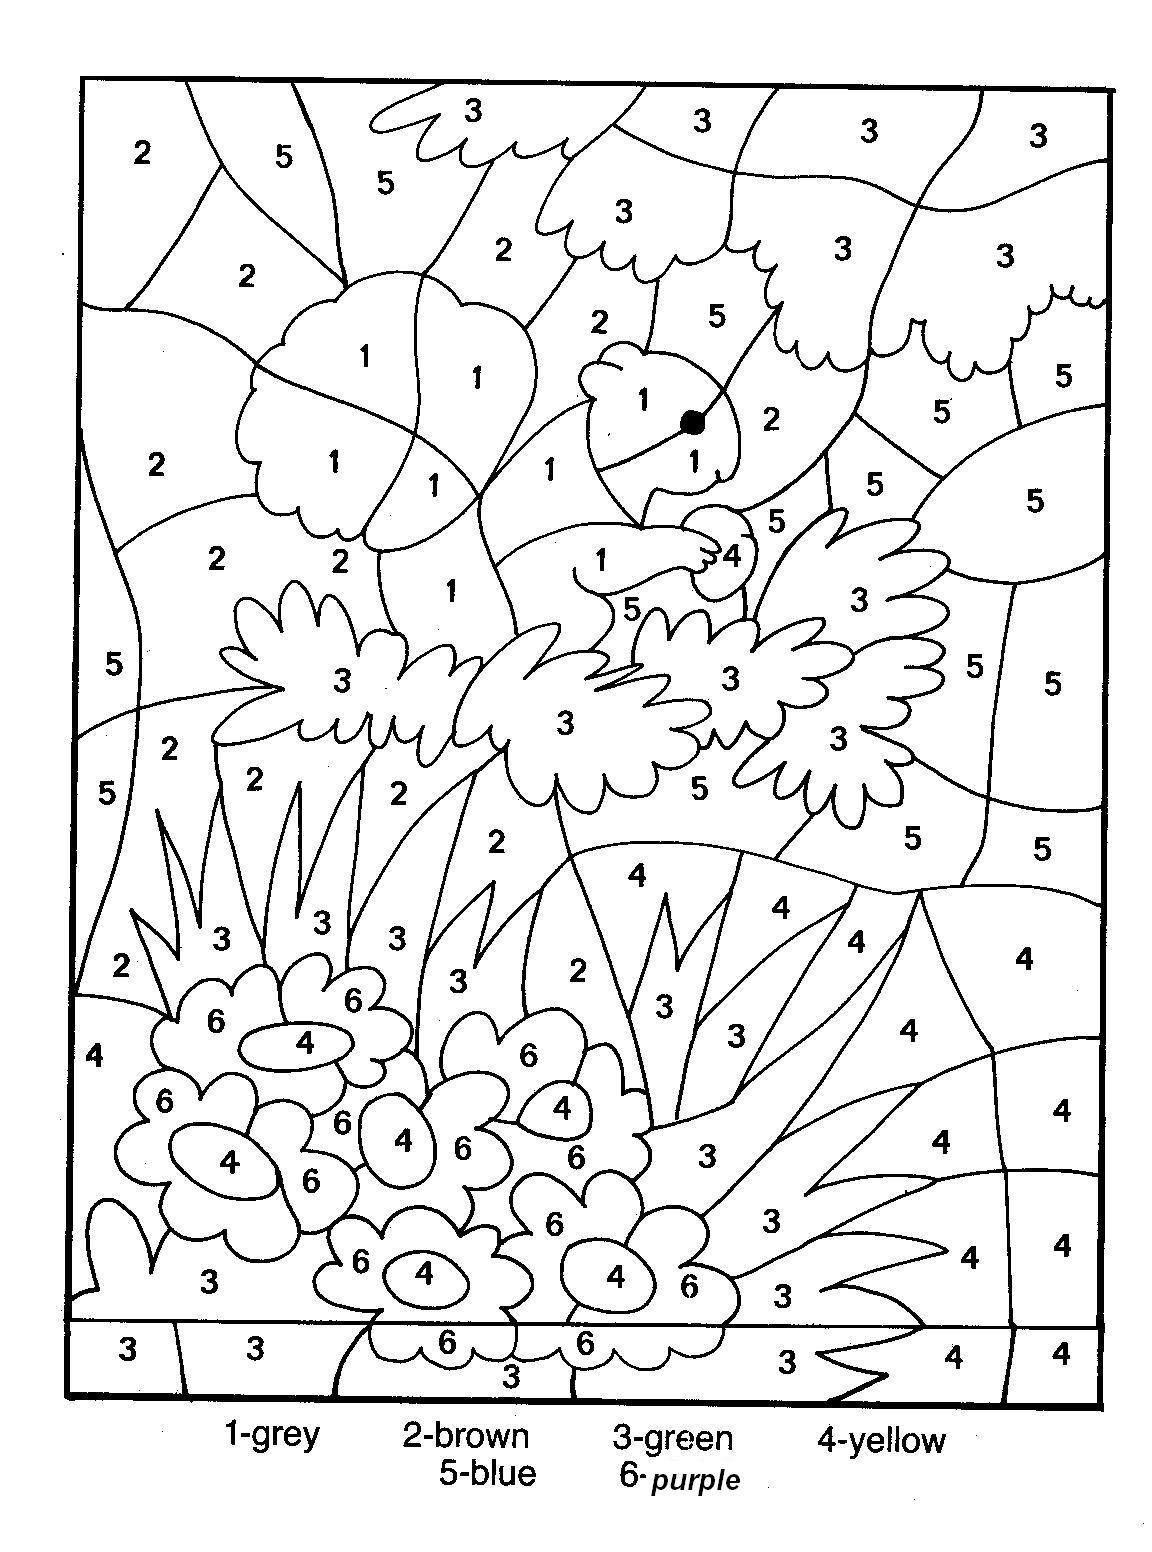 Coloriage Code Grande Section.25 Dessins De Coloriage Magique Gs A Imprimer